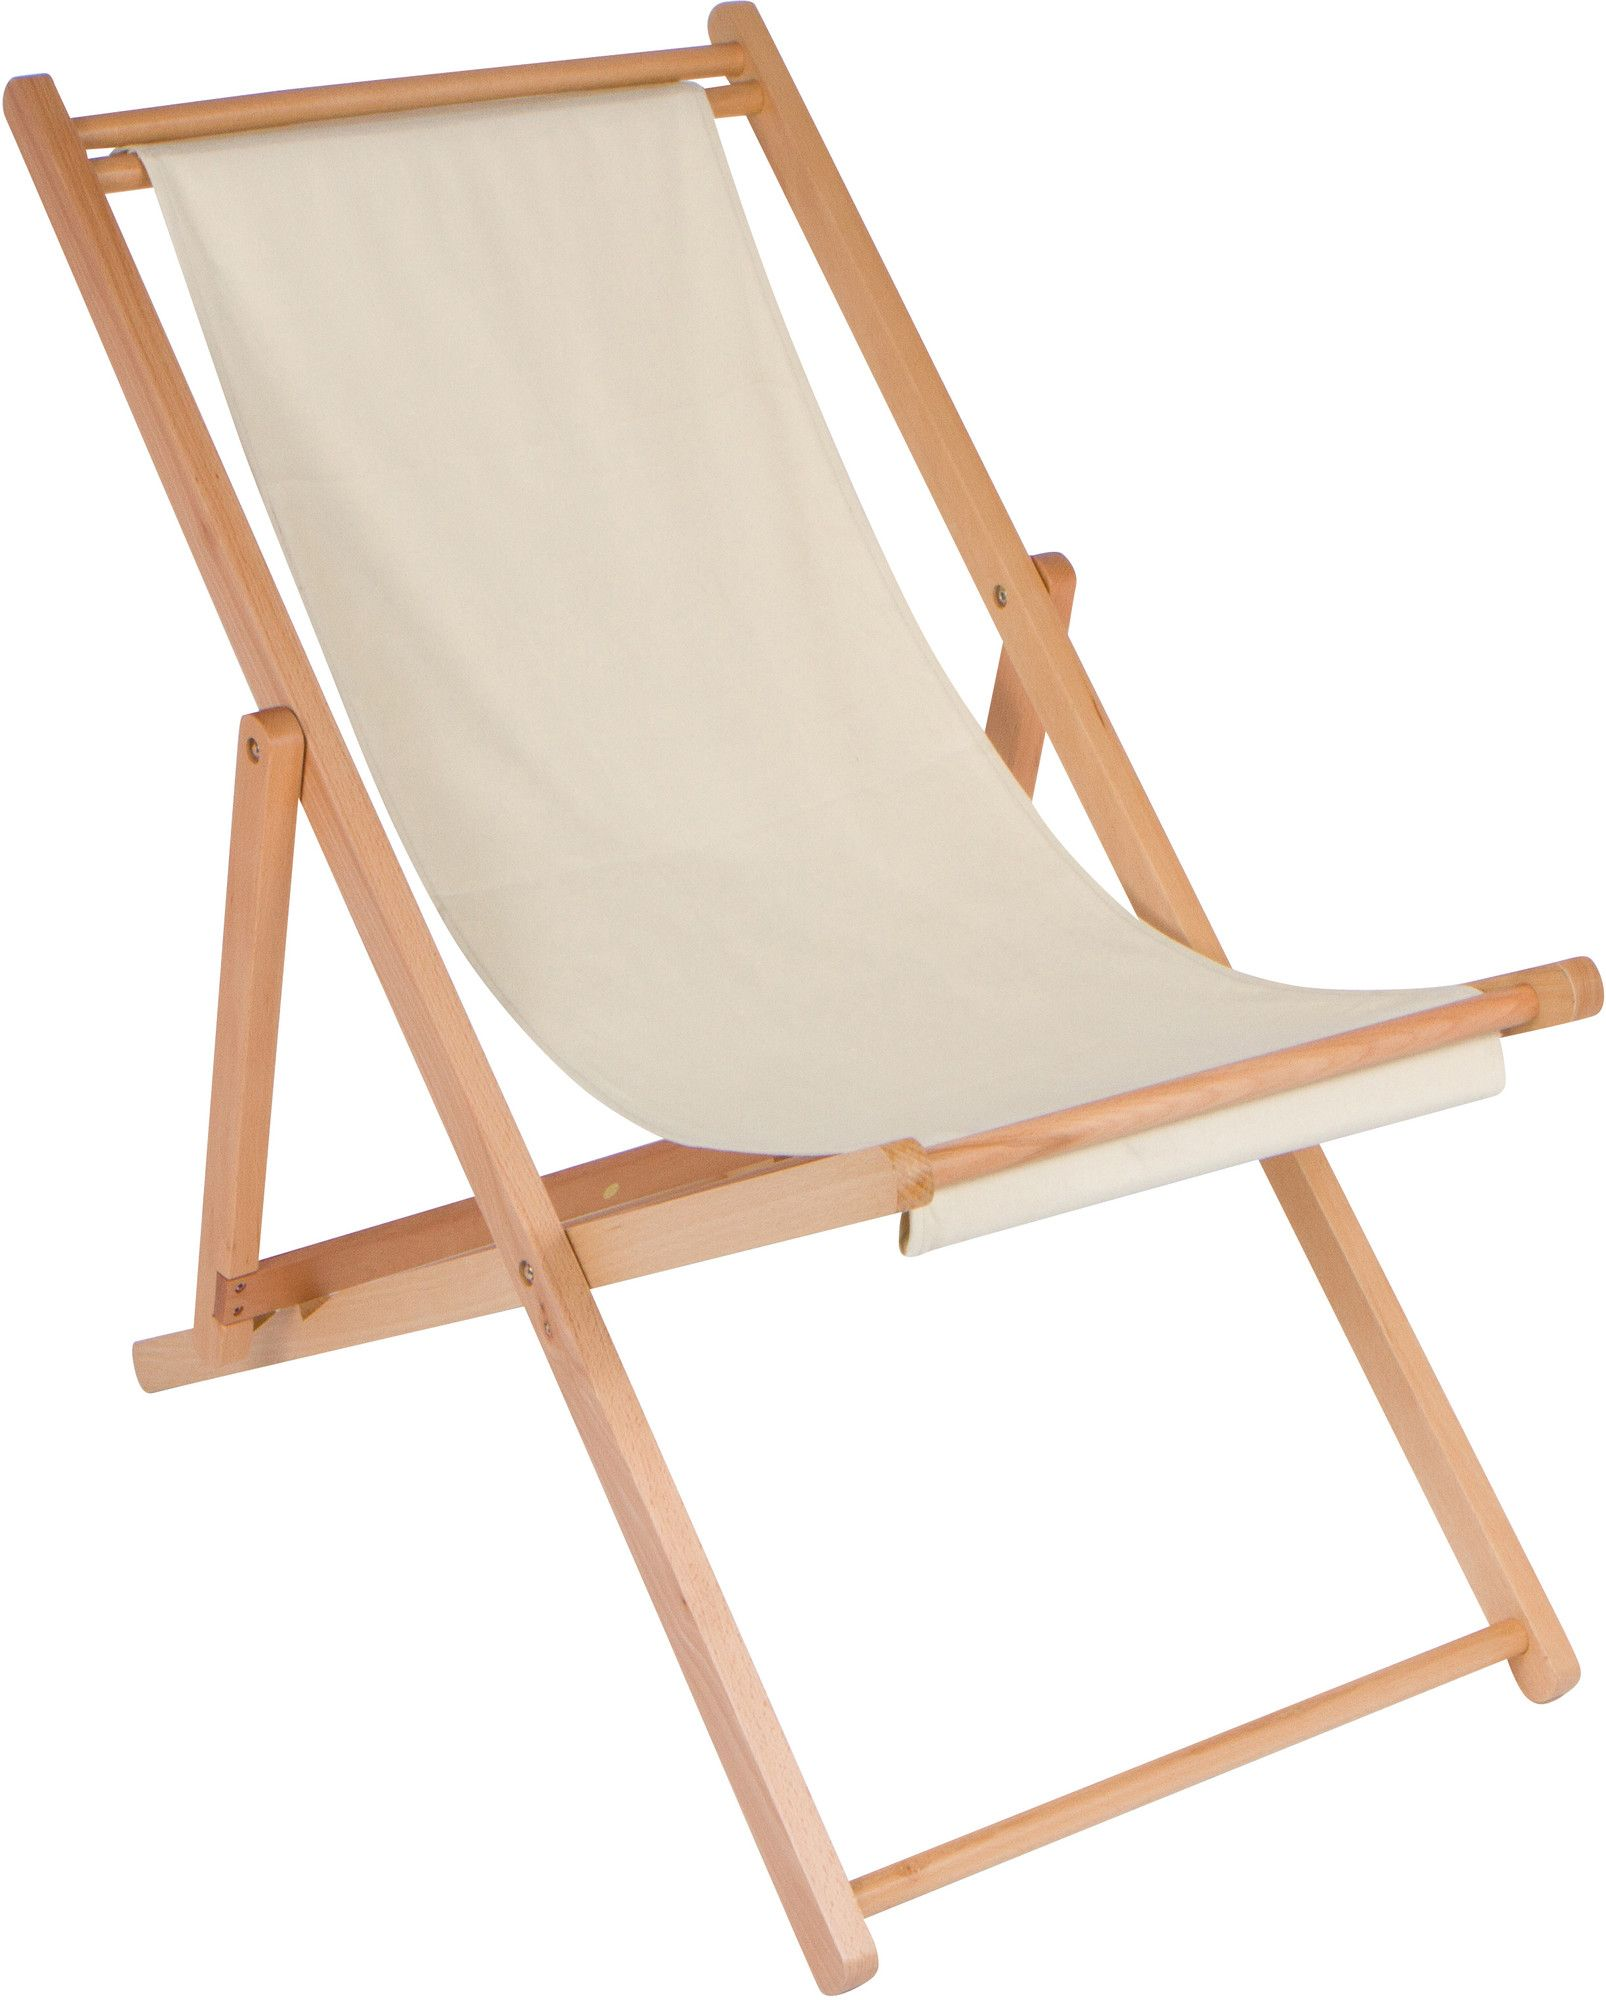 Folding Wood Beach Chair Cabana Reclining Beach Chair In 2019 Products Chair Folding